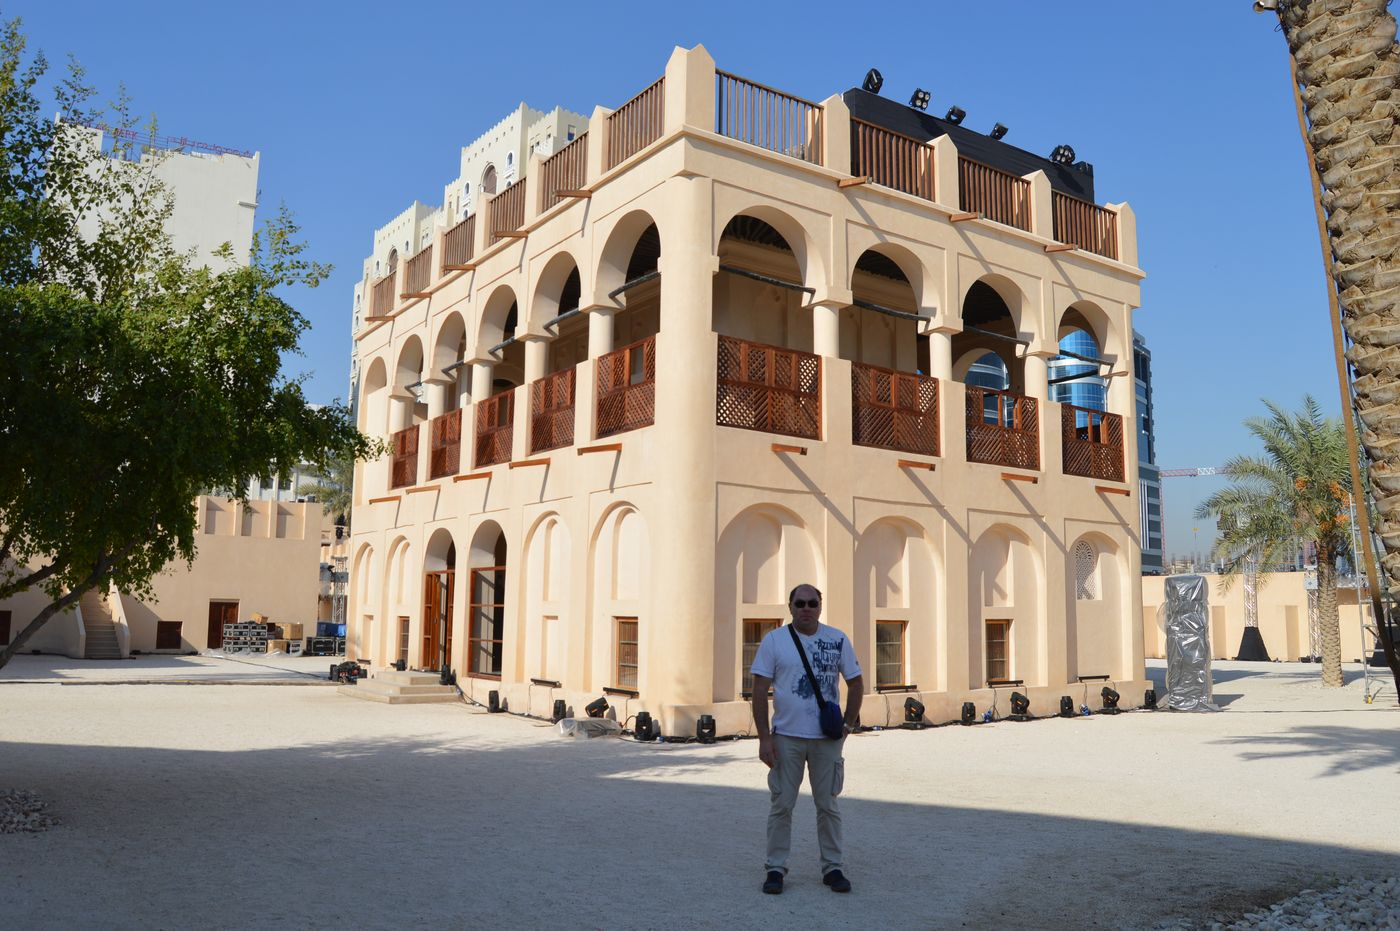 The Old Amiri Palace